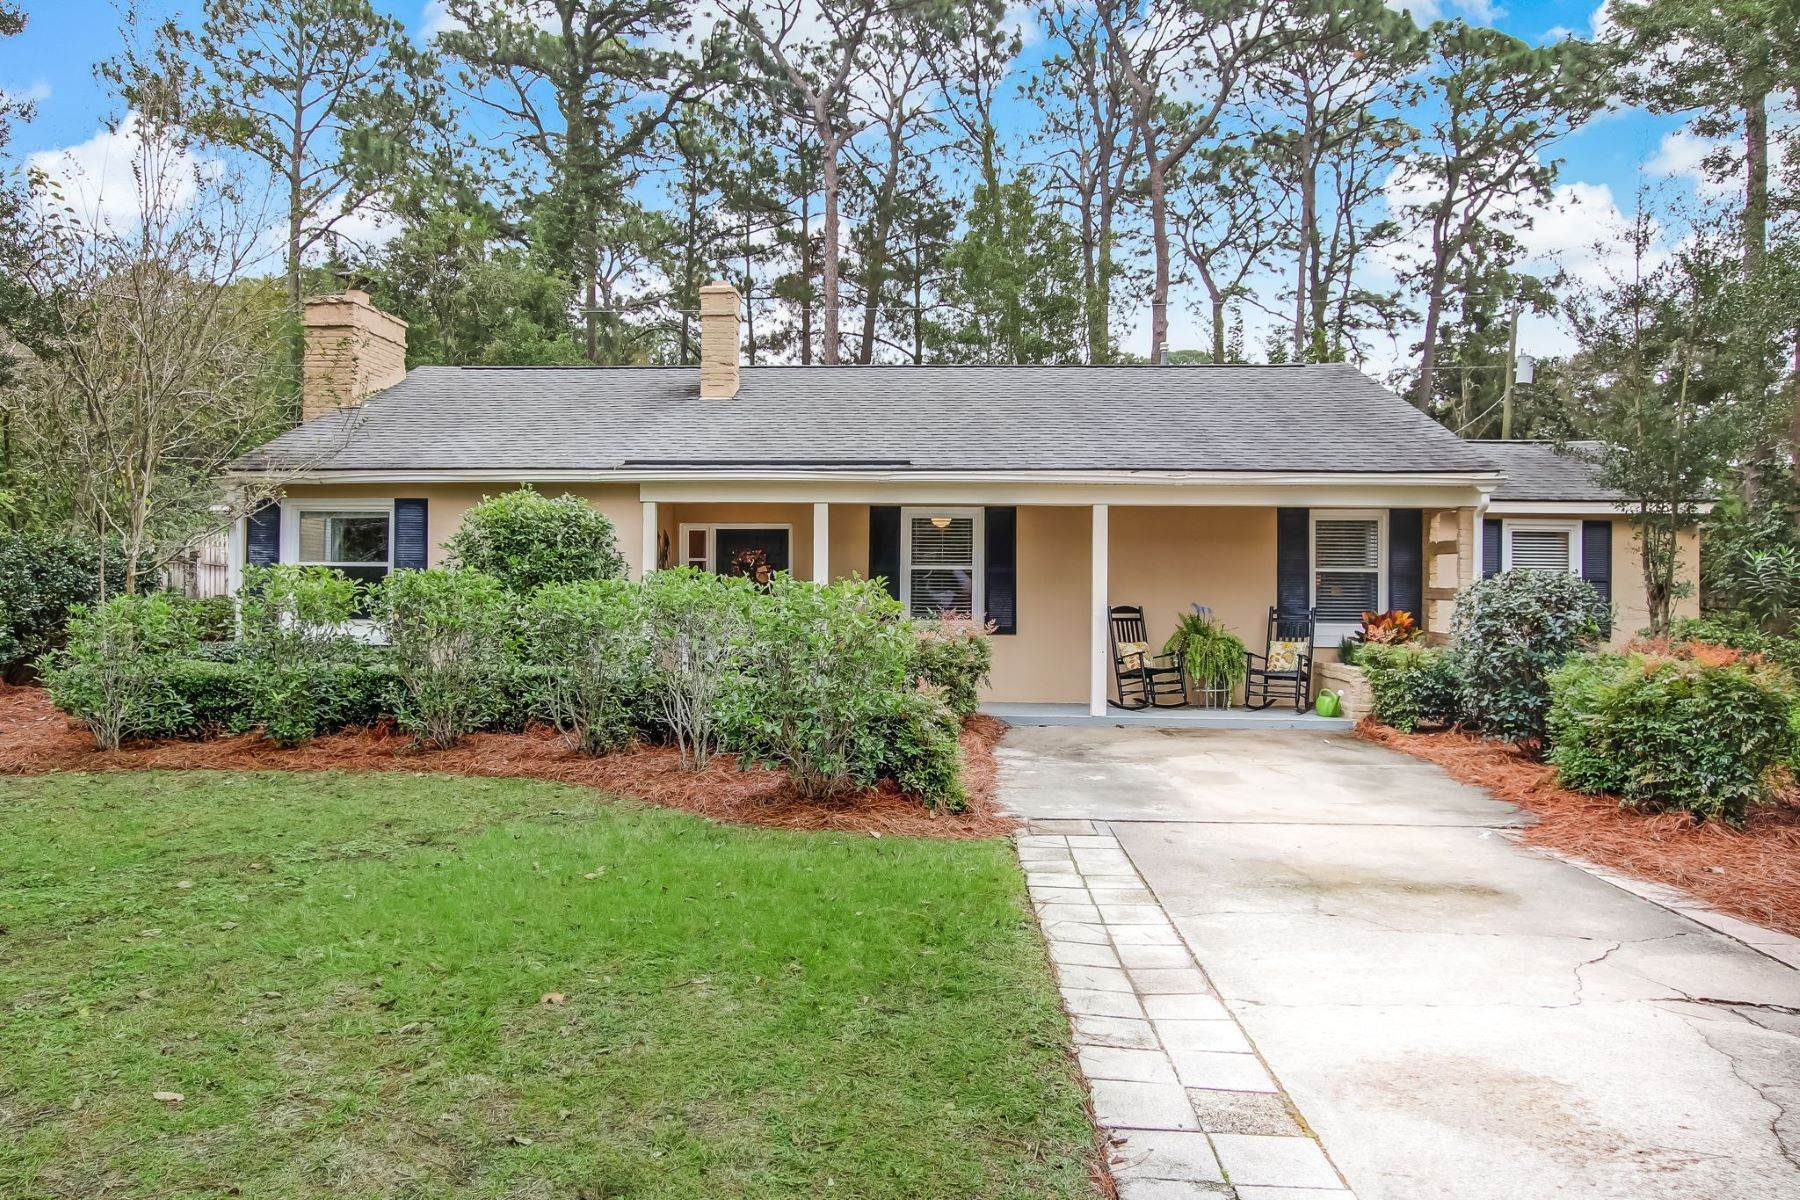 32. Single Family Homes for Sale at 9 Colonel Estill Avenue Savannah, Georgia 31406 United States